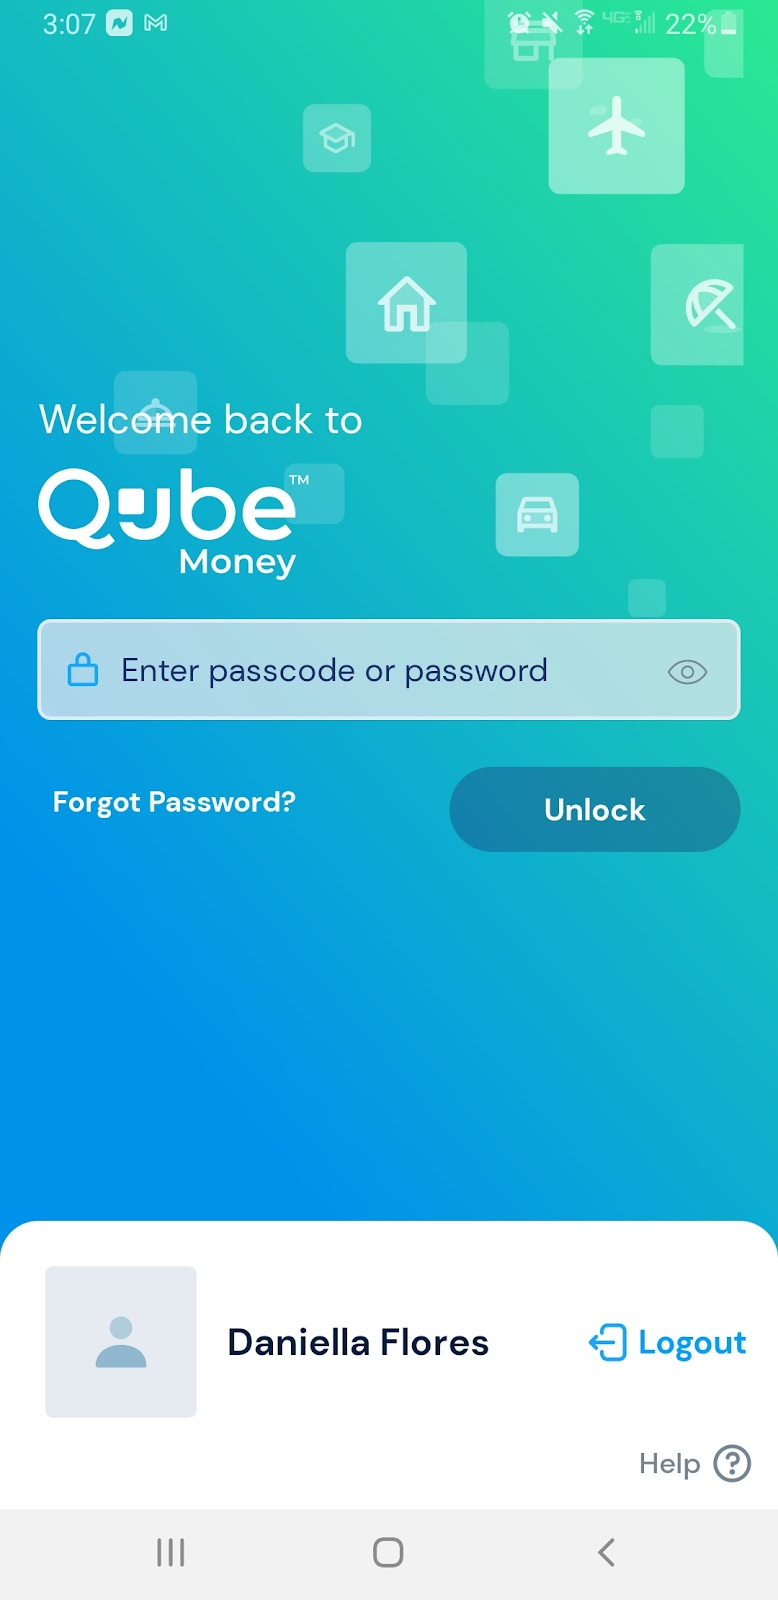 qube money review app snapshot showing the secure login screen